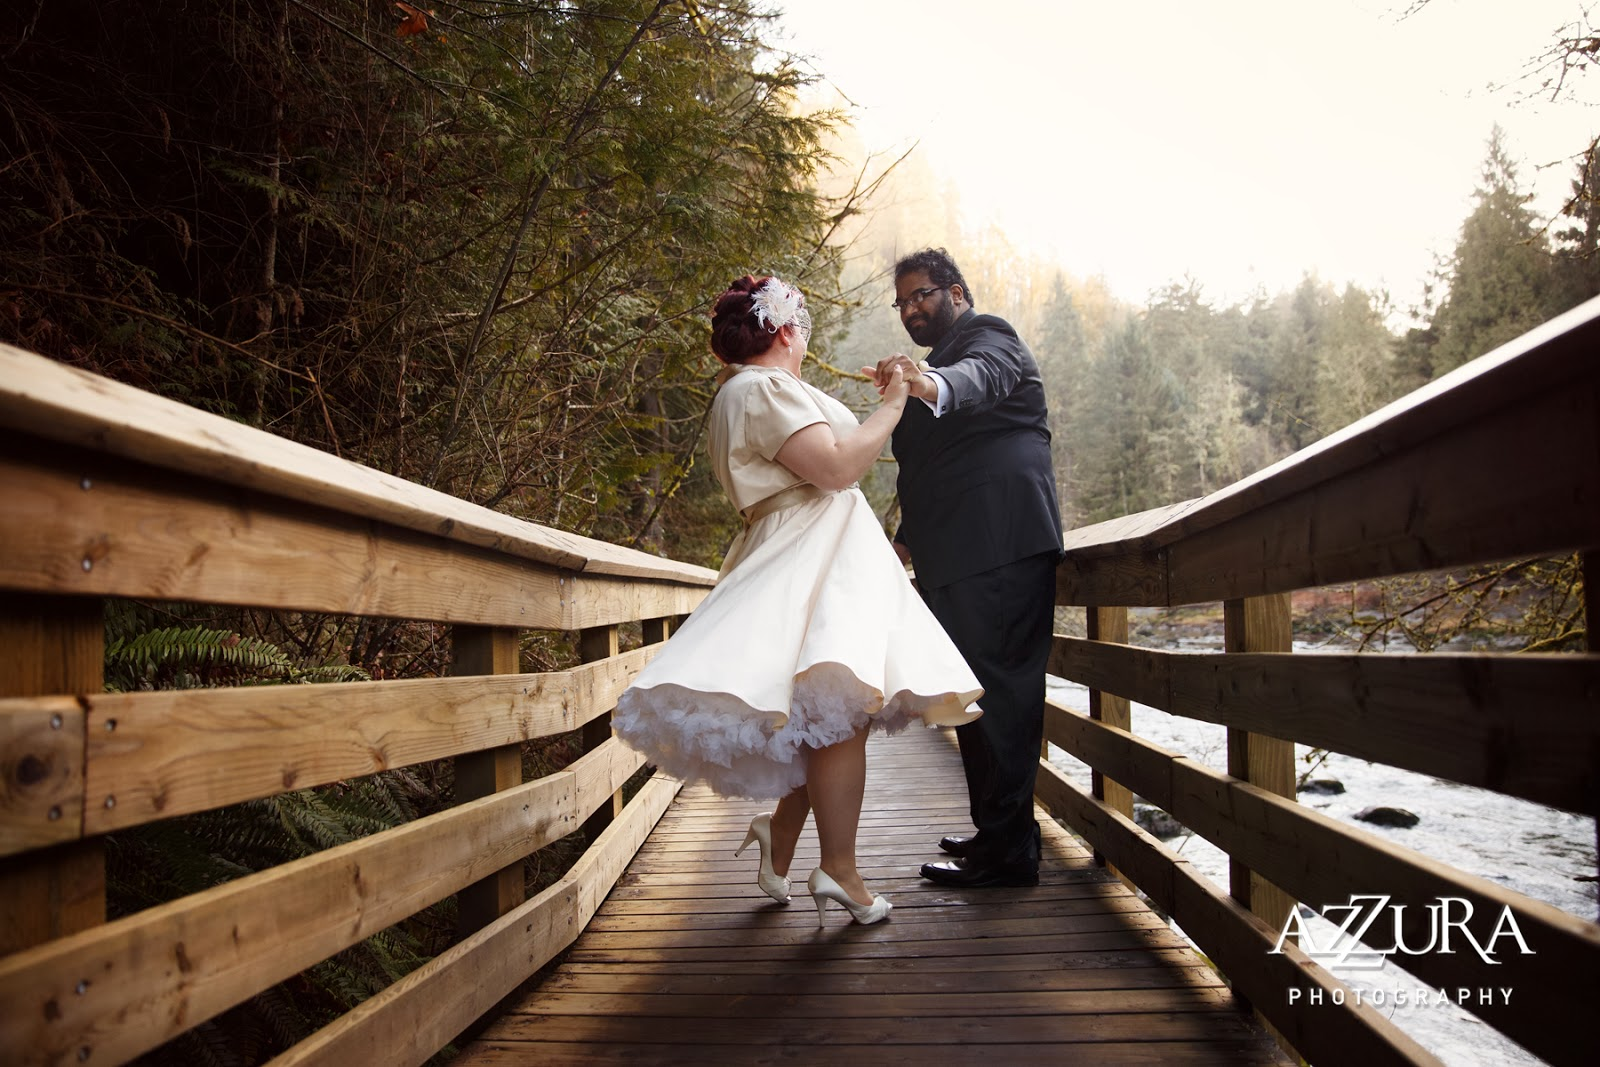 Dancing on the Bridge - Patricia Stimac, Seattle Wedding Officiant